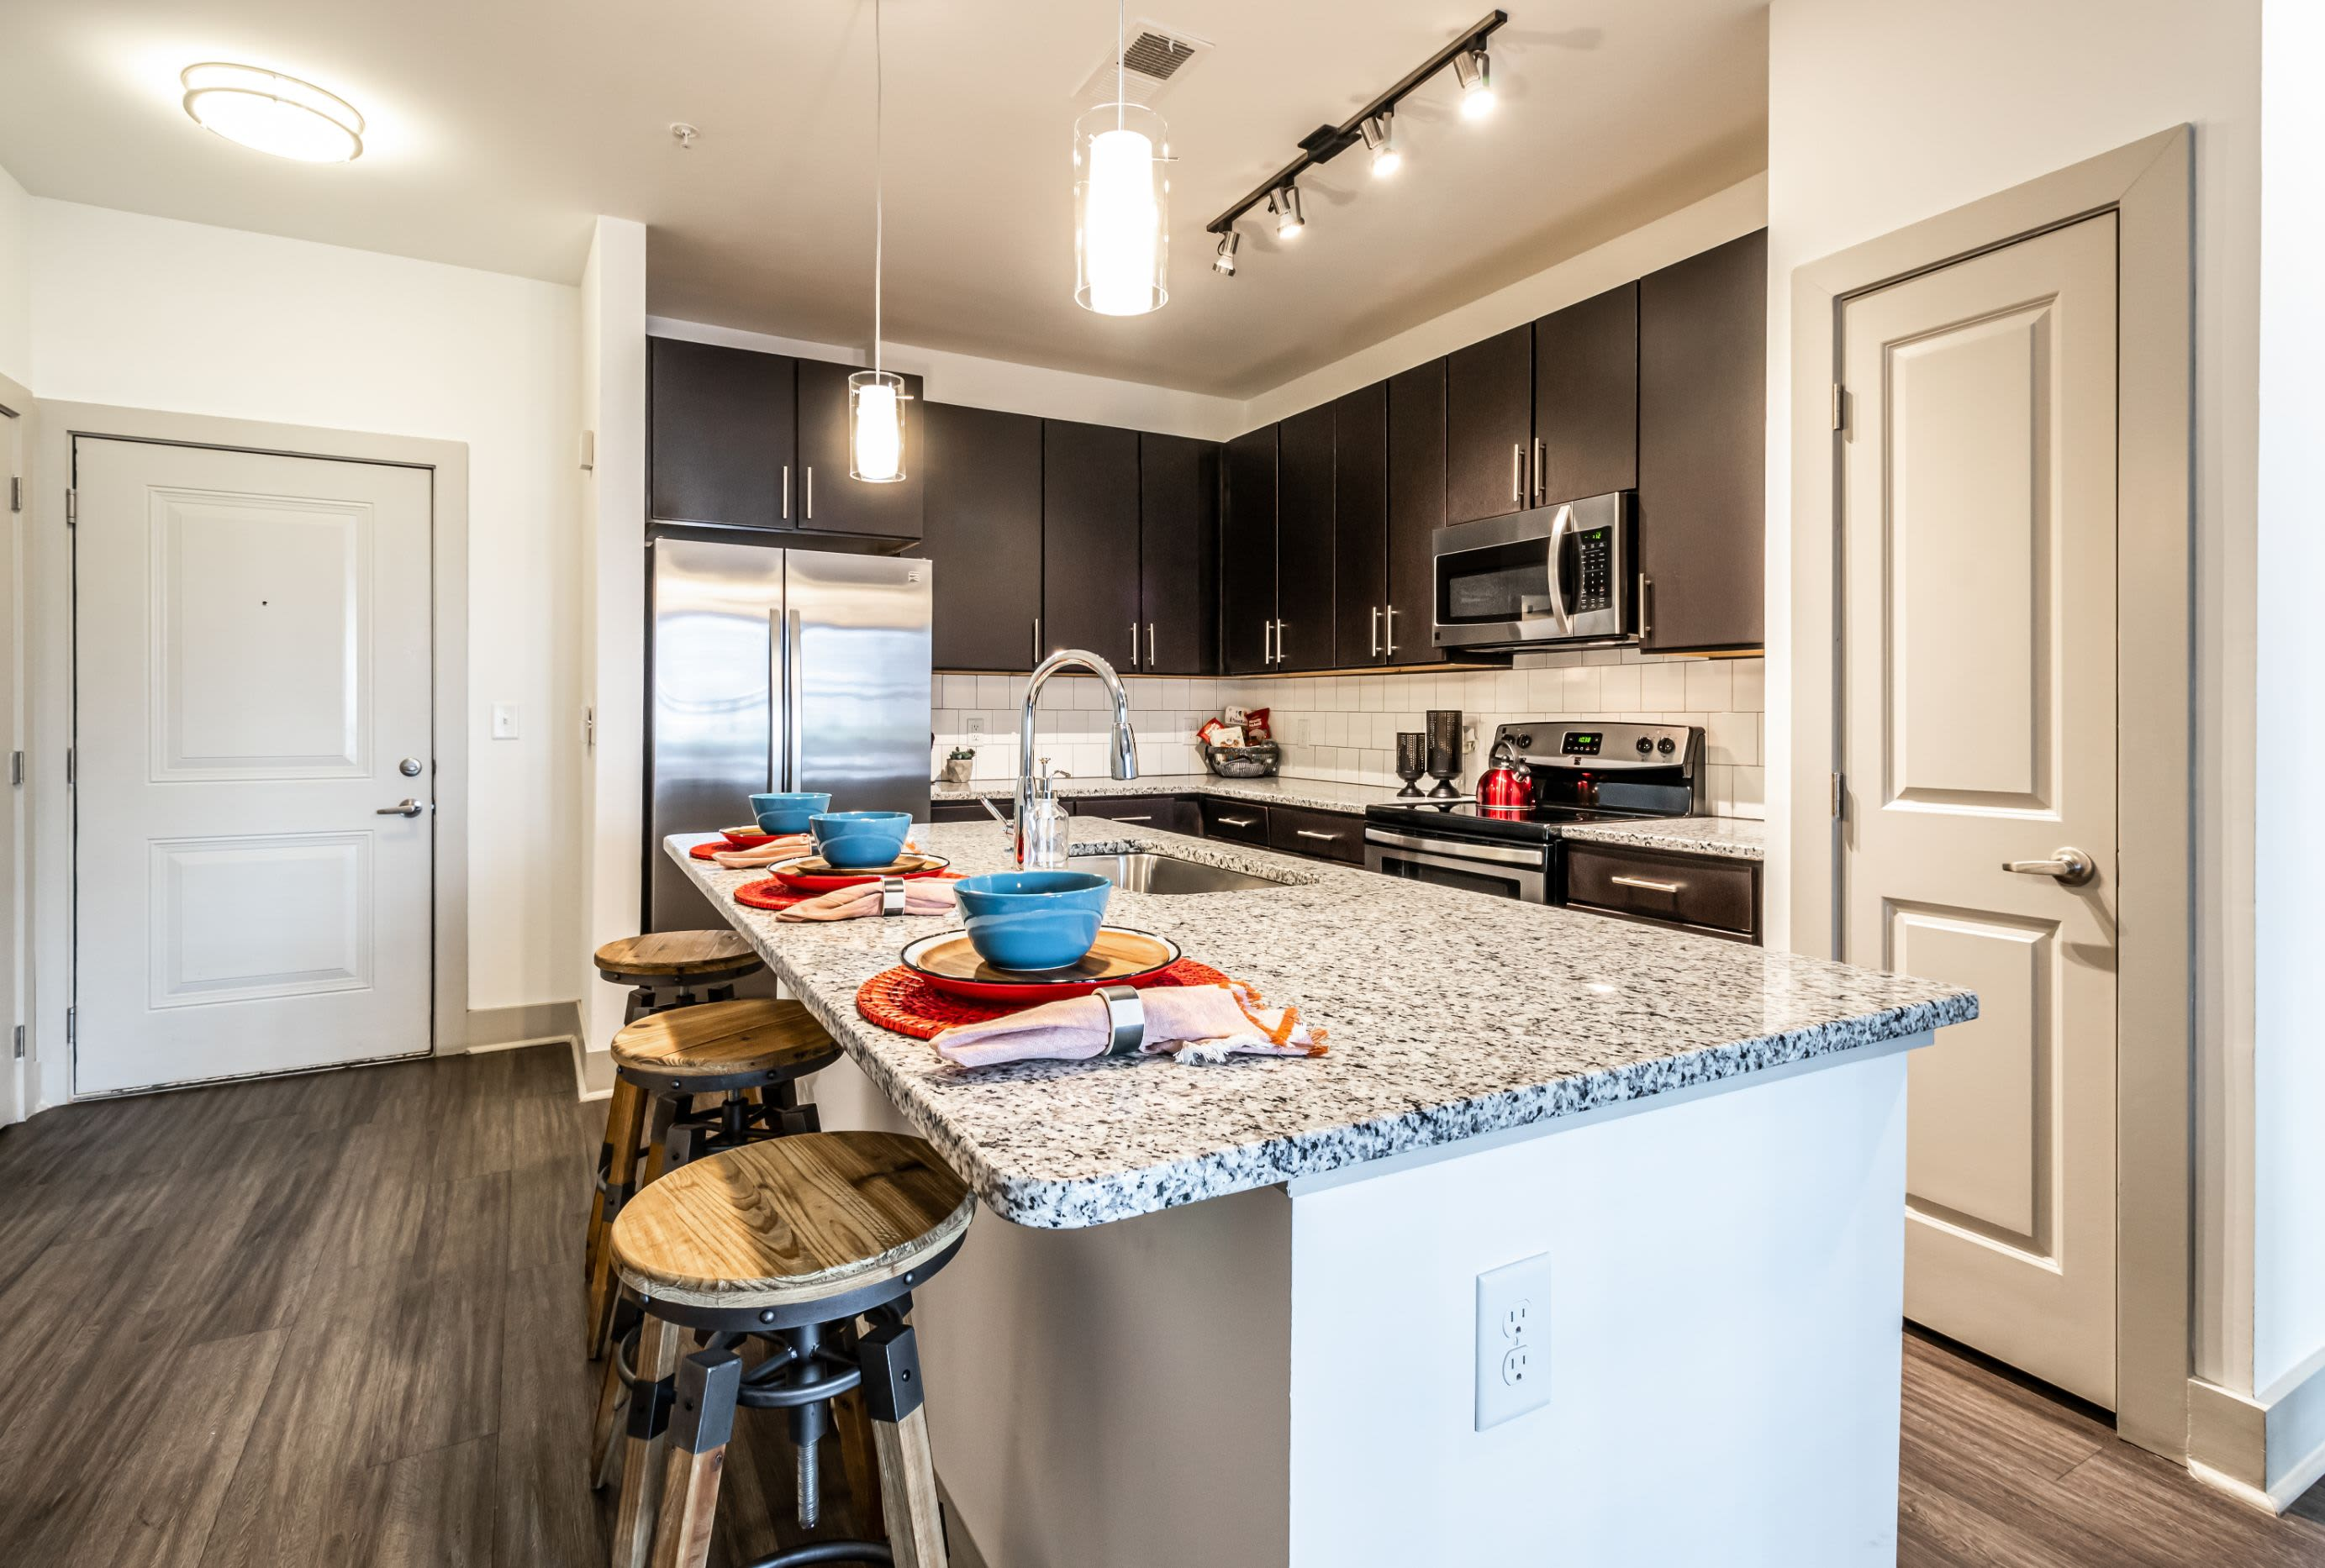 Kitchen with a large island at Skyline West in Atlanta, Georgia